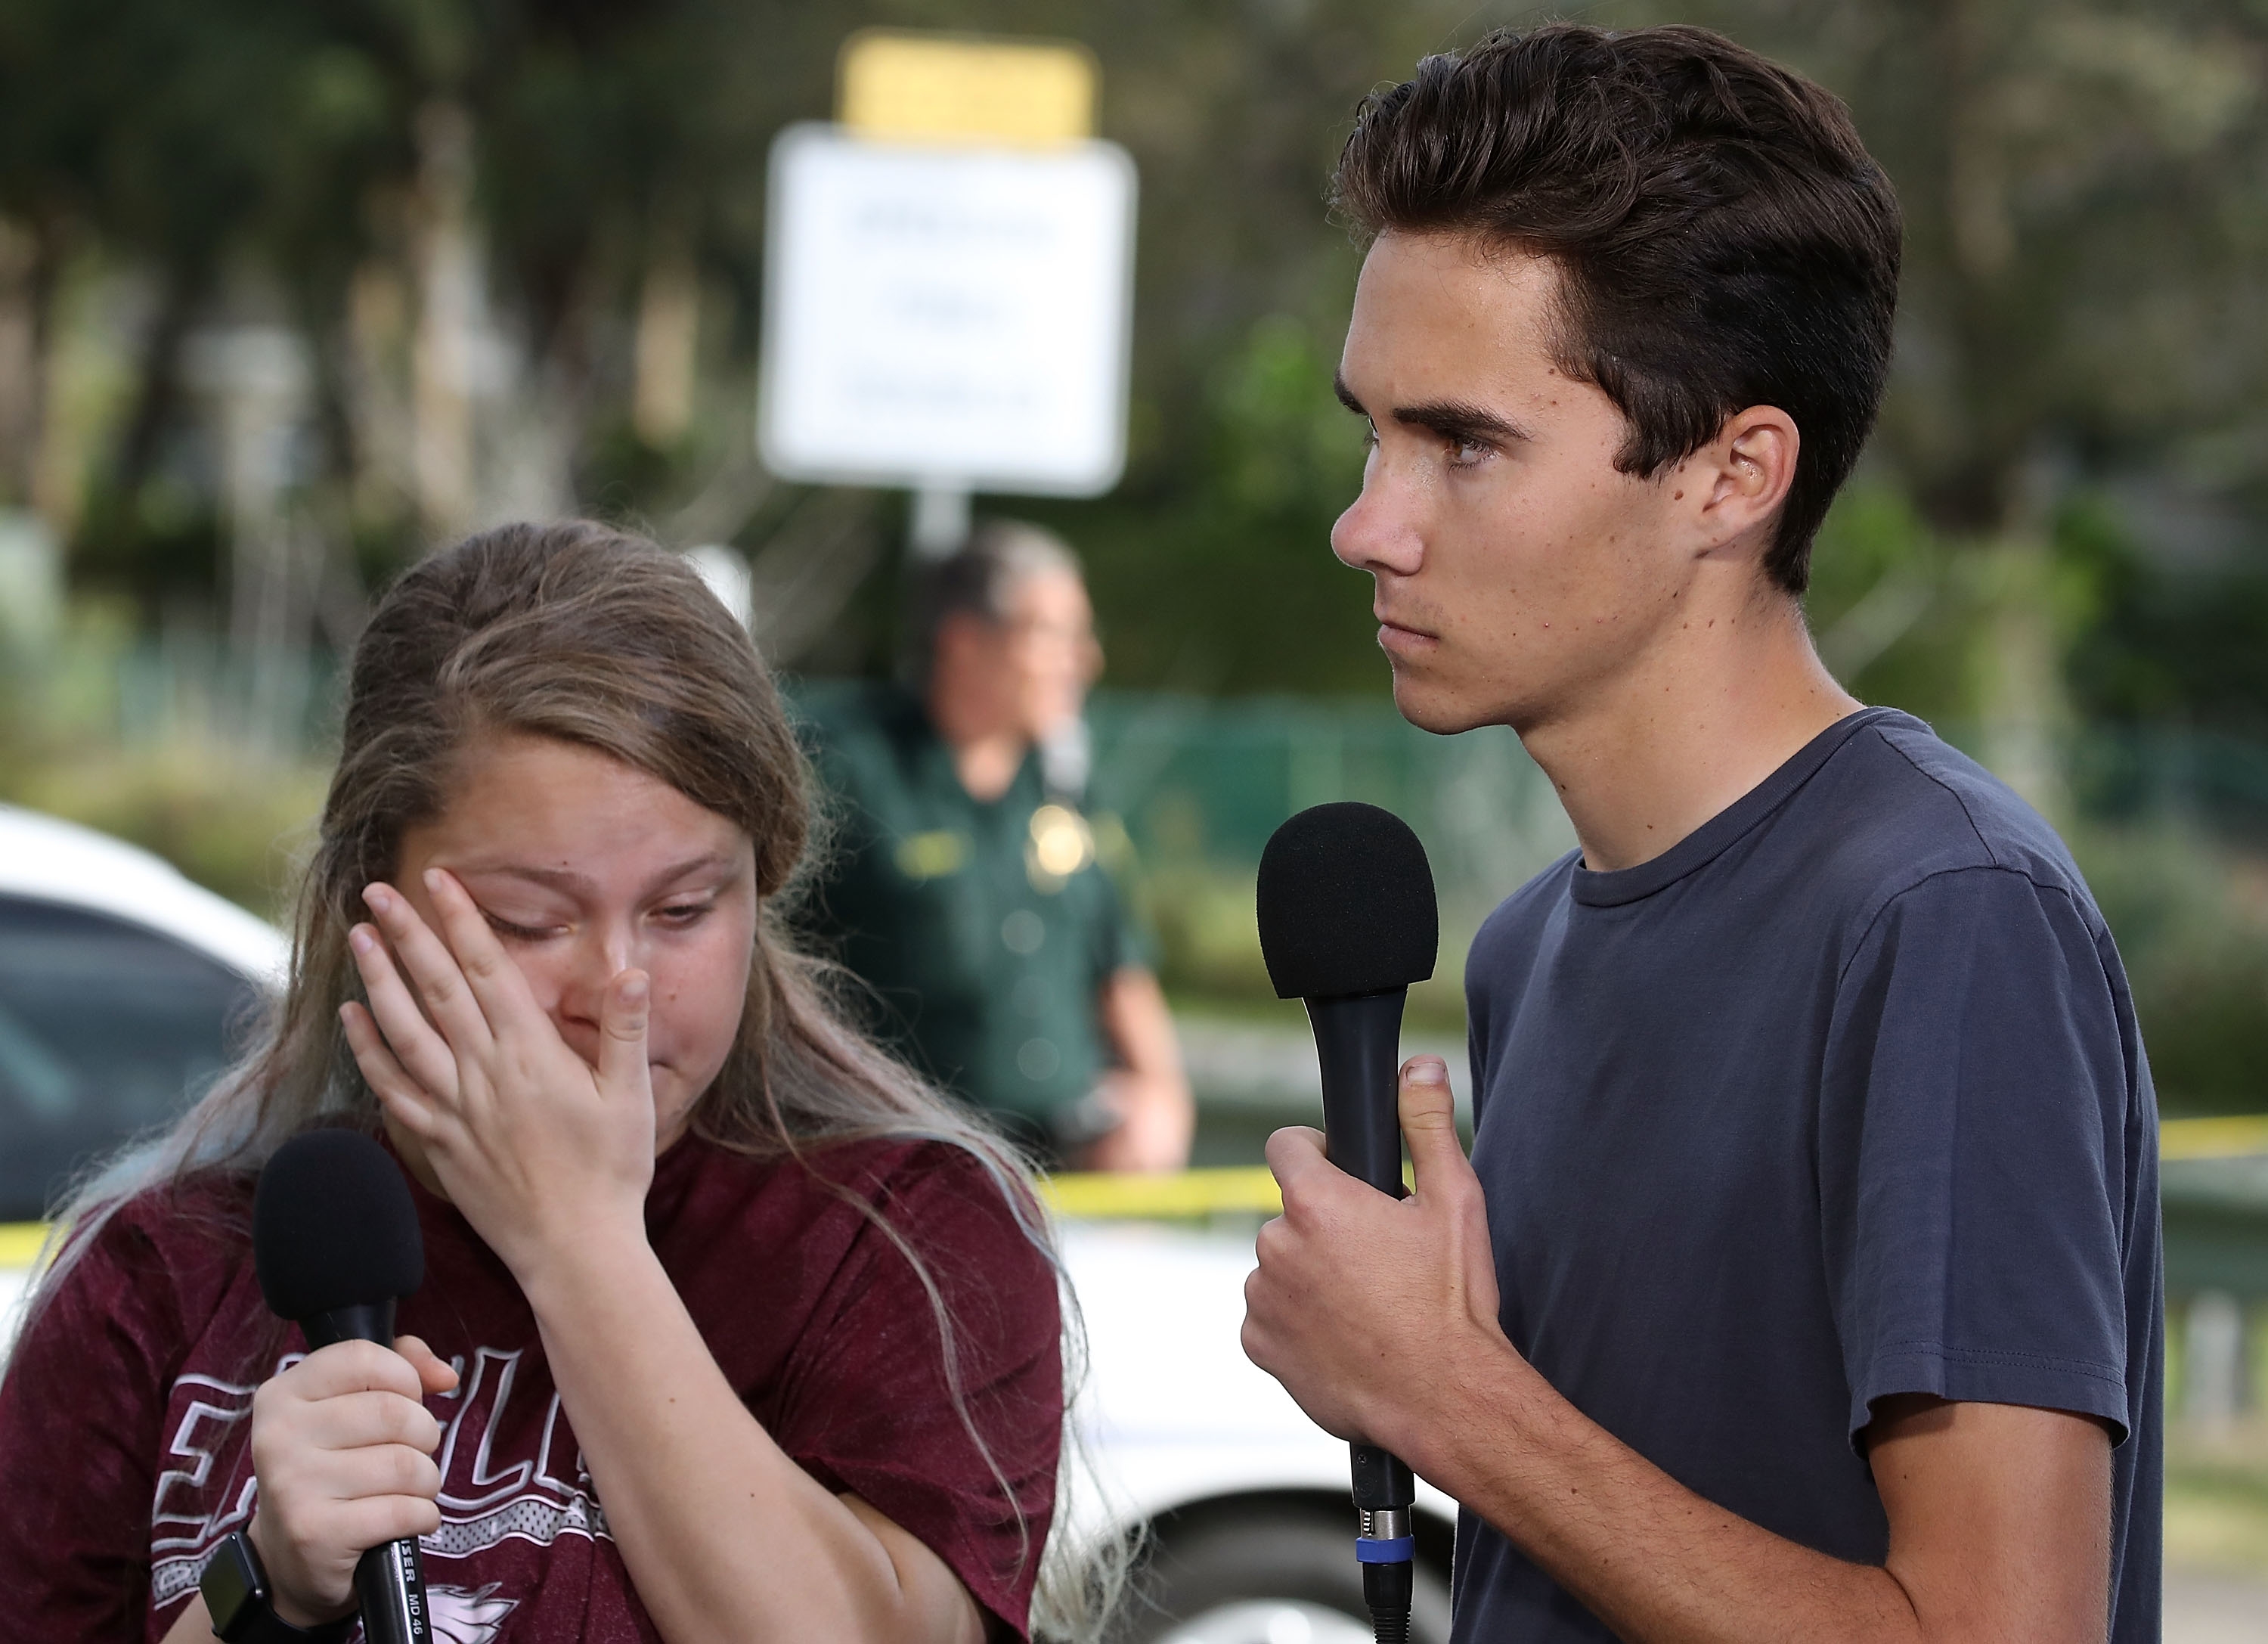 YouTube Removes Conspiracy Theory Video About Parkland Shooting